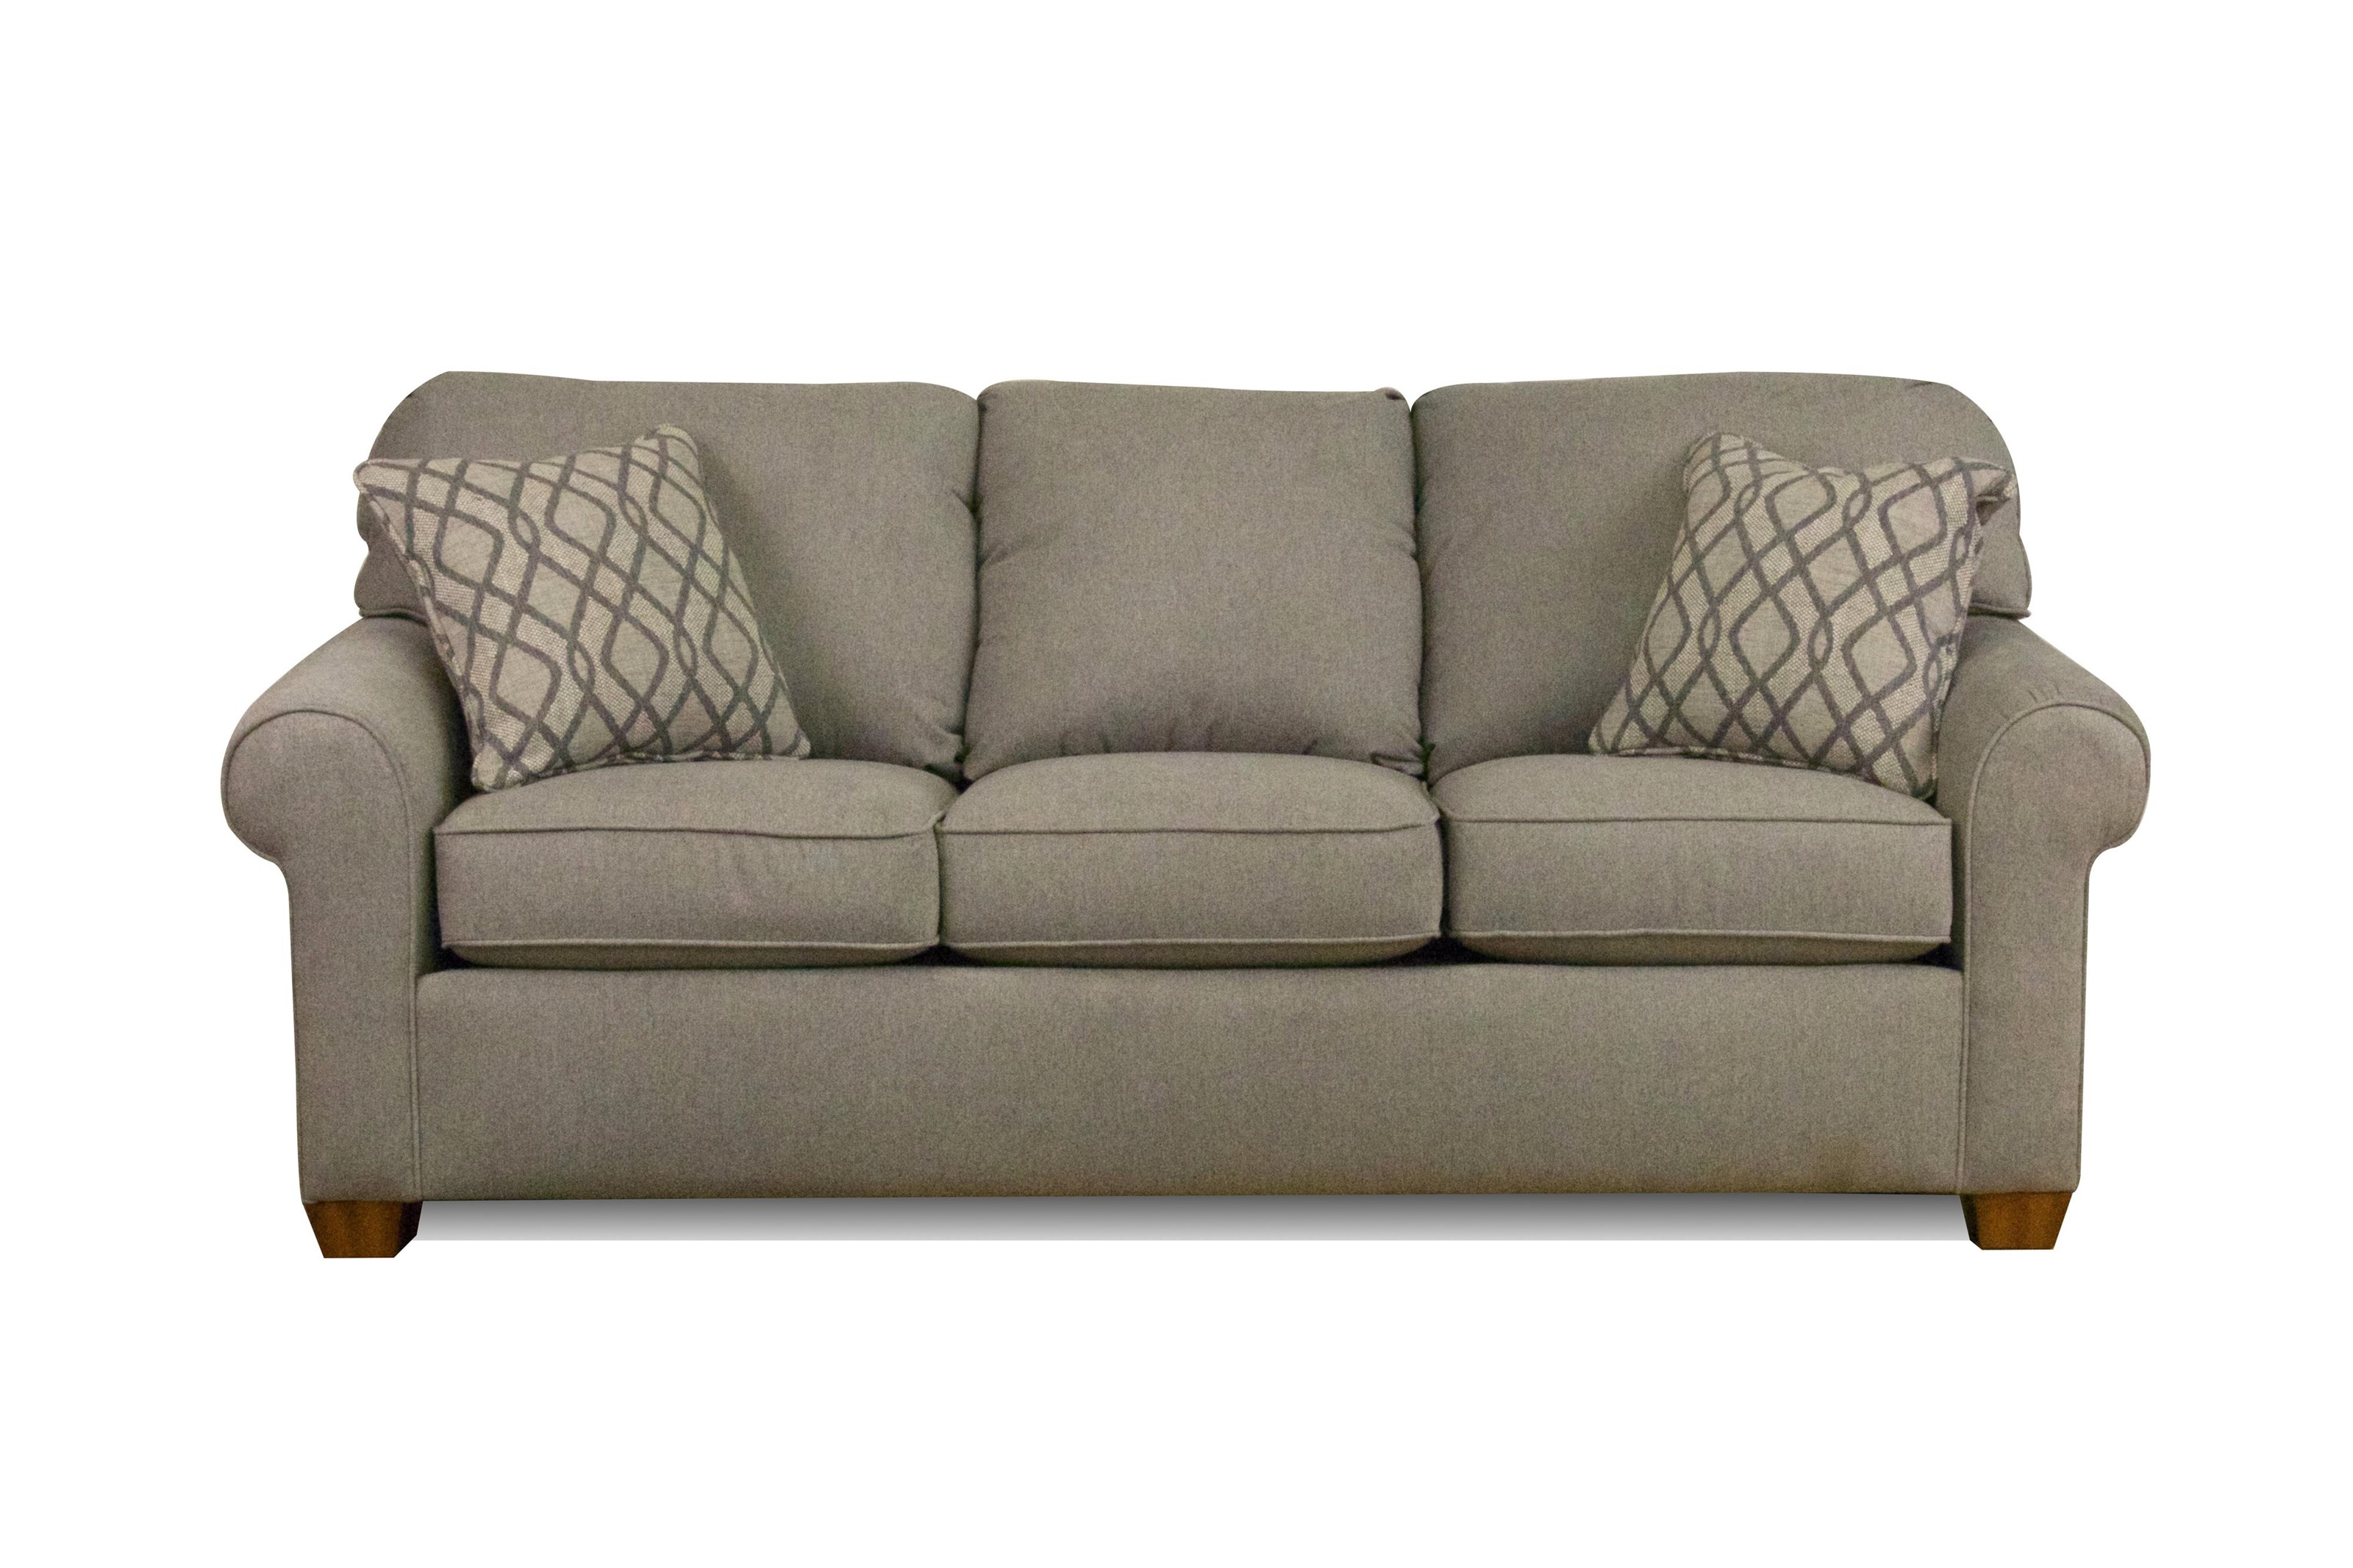 Ruby Gordon Home For Preferred Waylon 3 Piece Power Reclining Sectionals (Gallery 18 of 20)